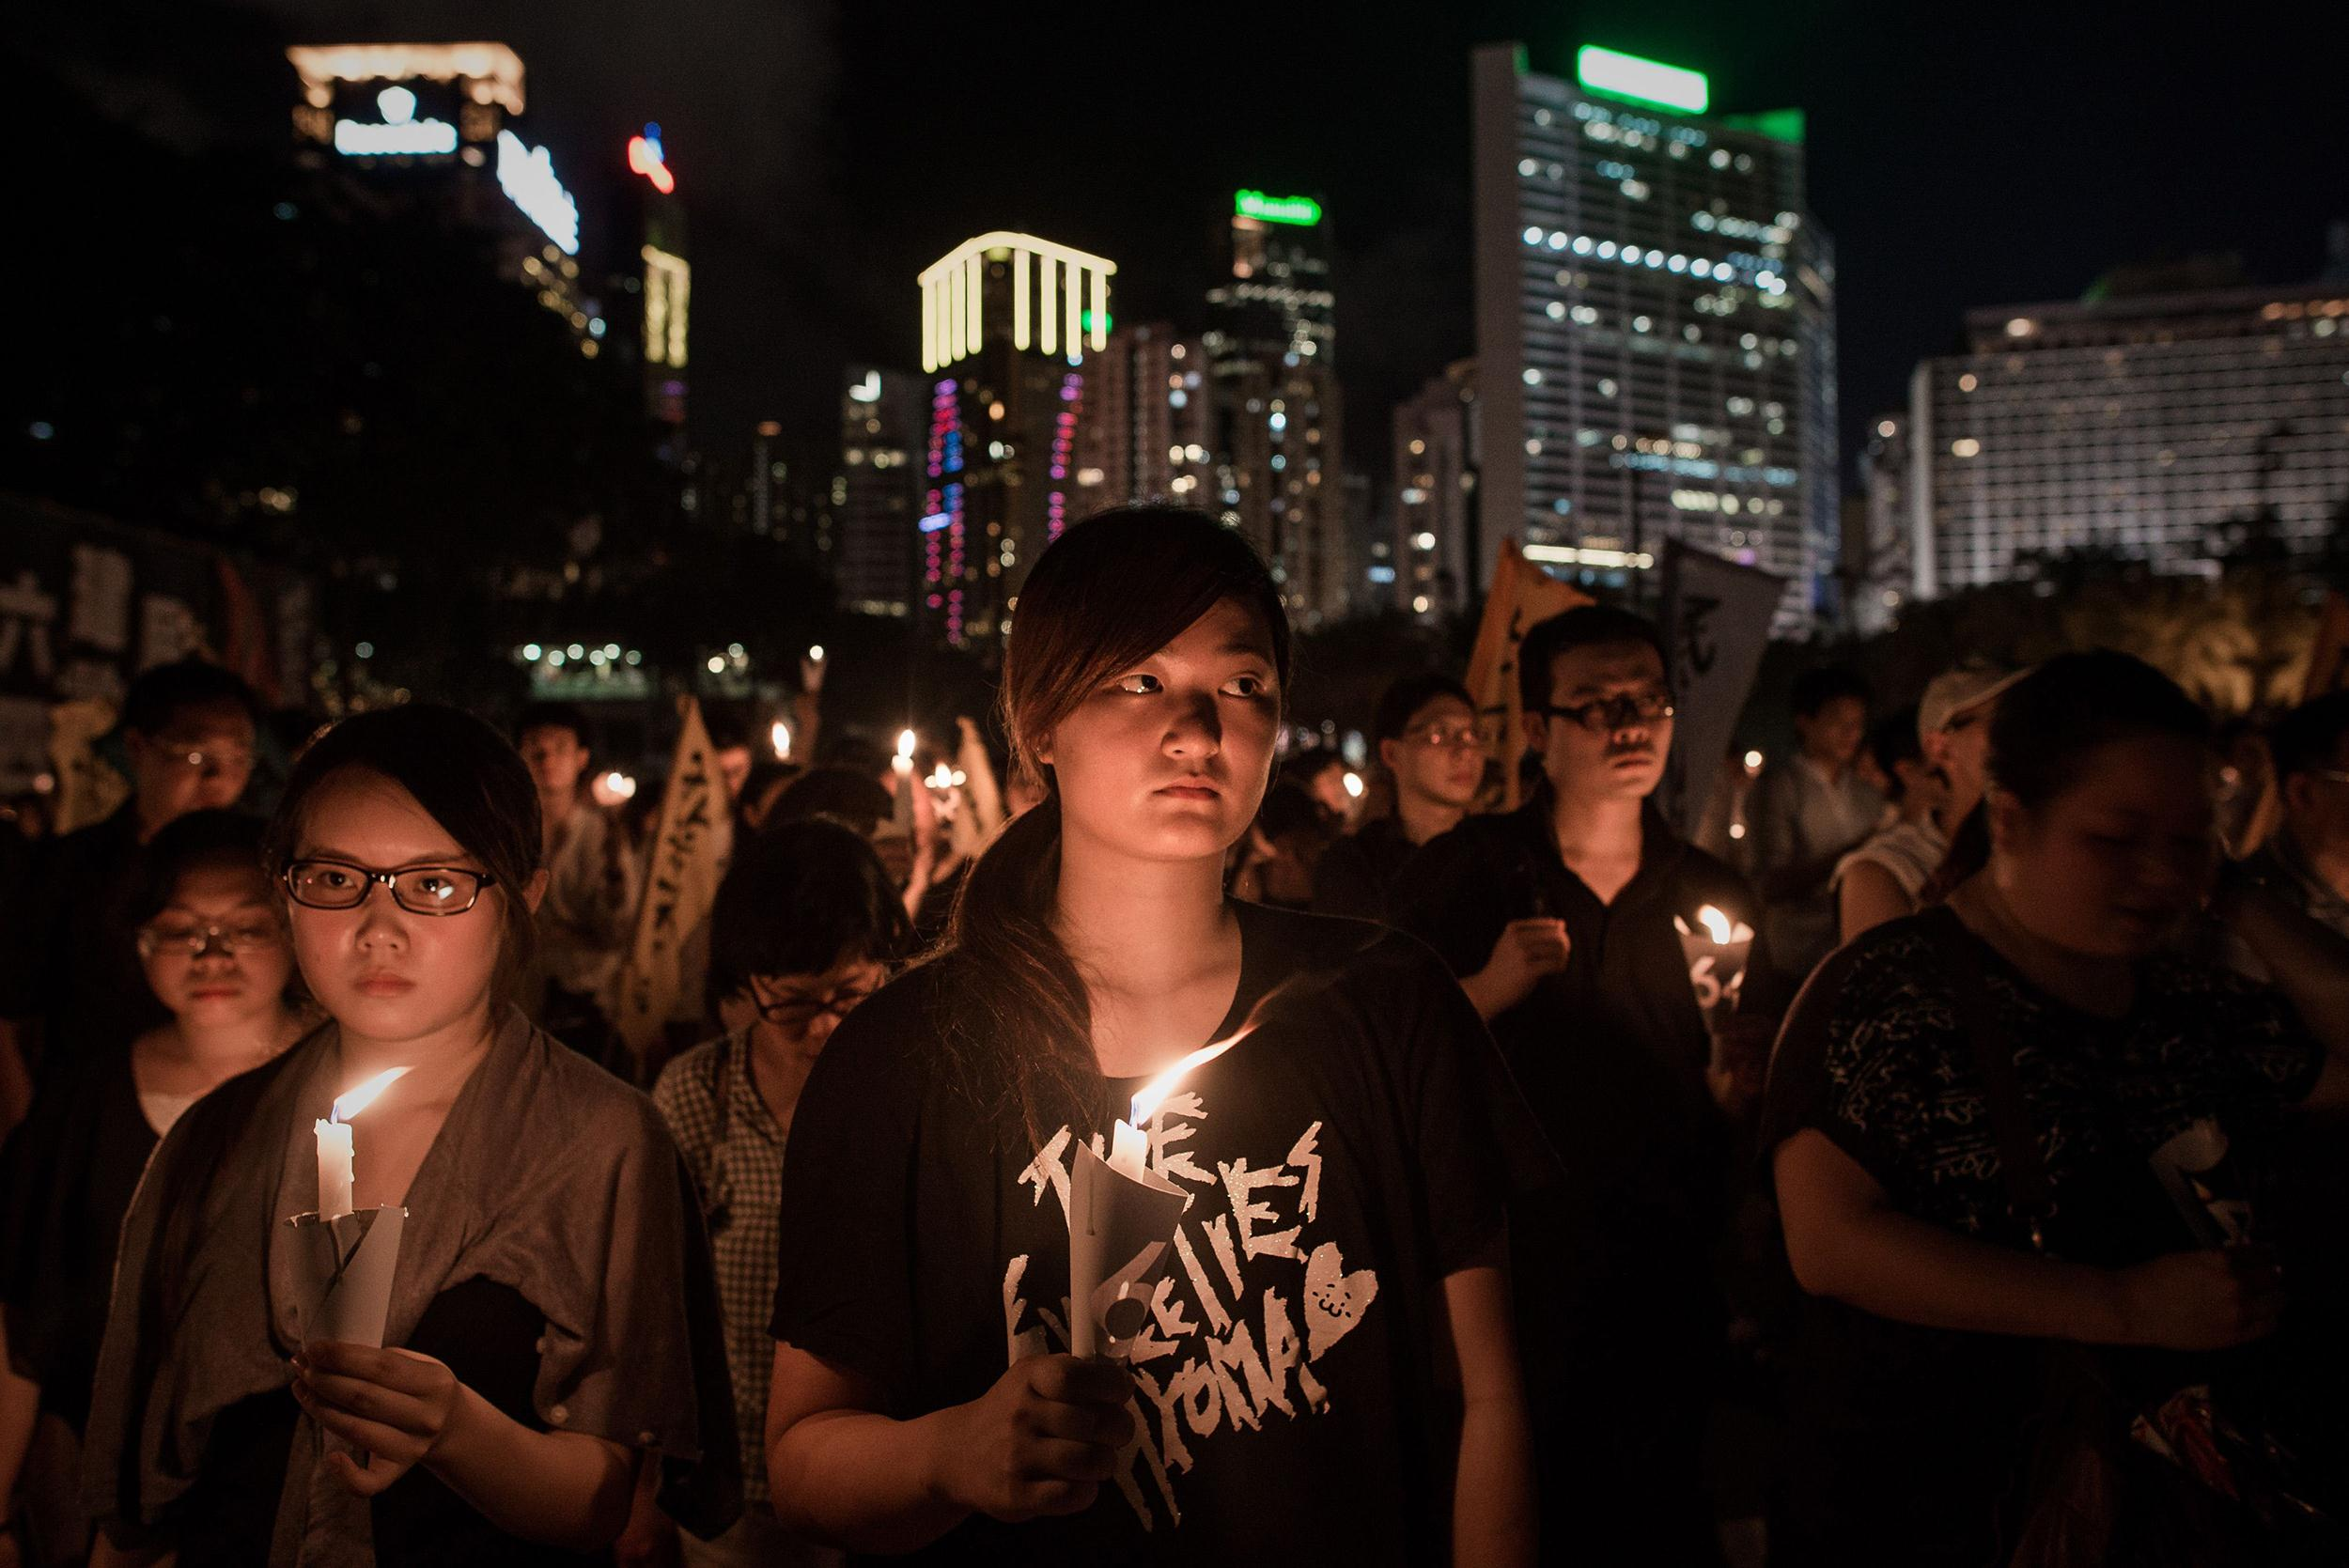 Image: People hold candles to commemorate China's 1989 Tiananmen Square events during a candlelight vigil in Hong Kong